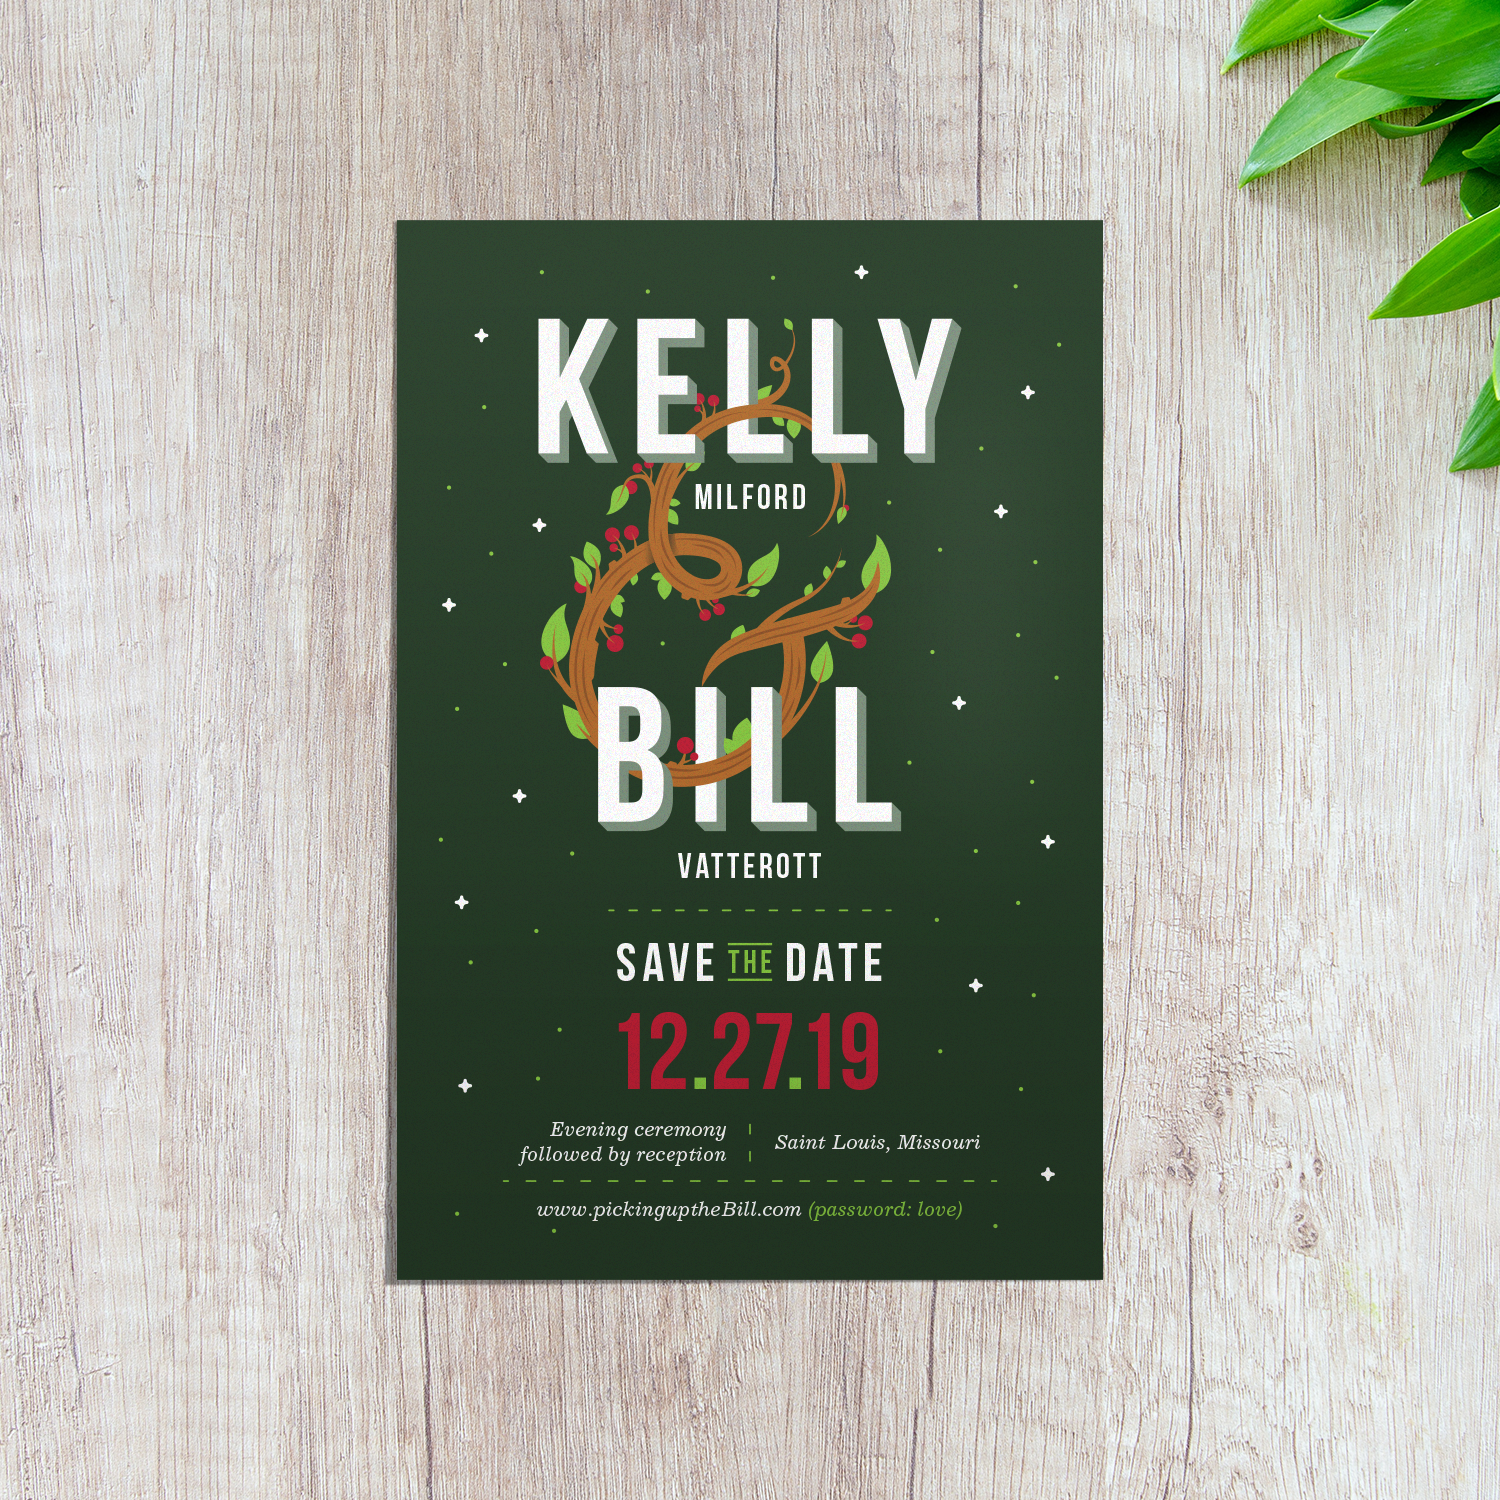 Kelly-+-Bill-Wedding-Save-the-Date-mockup.png